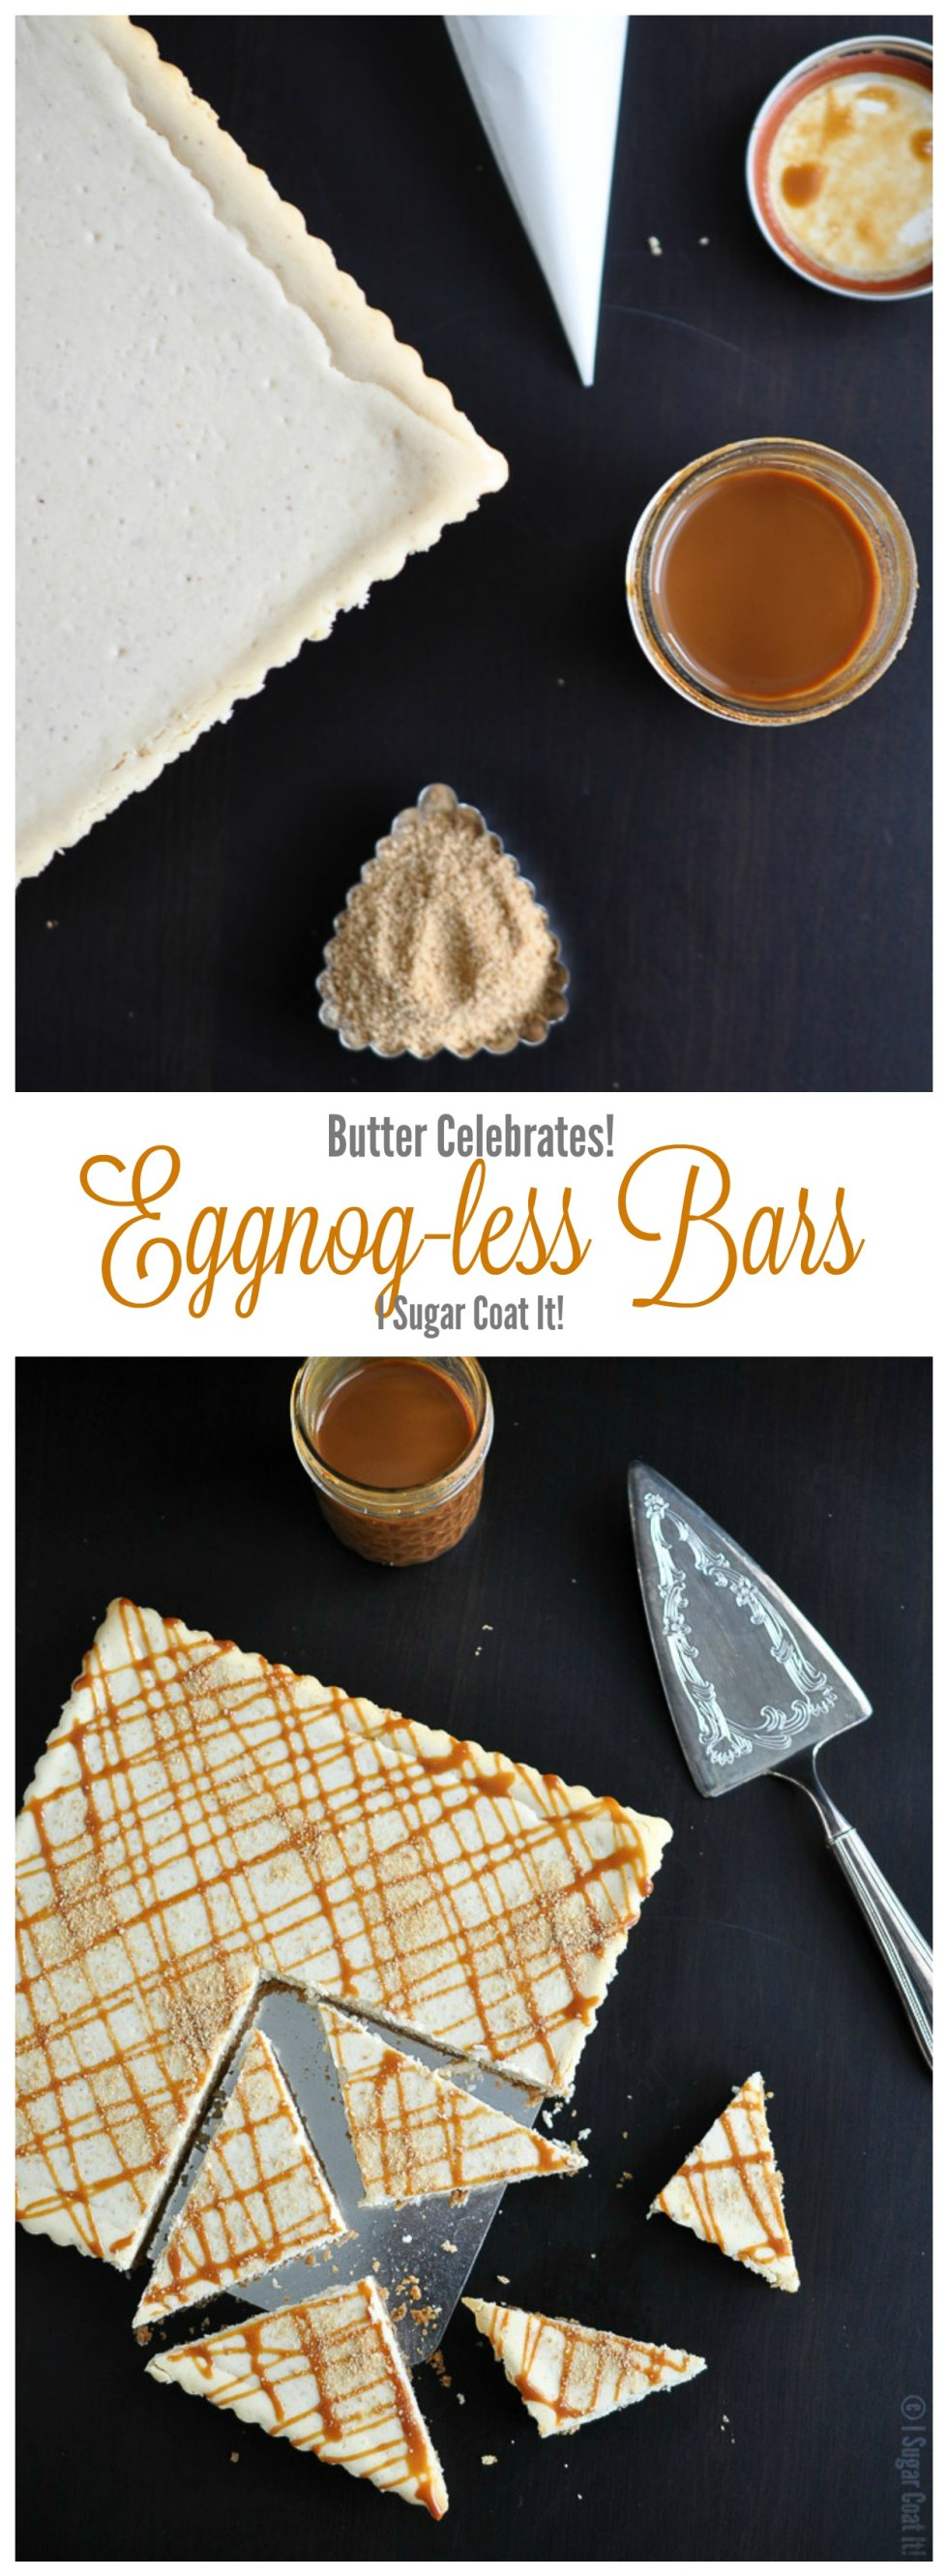 Butter Celebrates Eggnog-less Bars